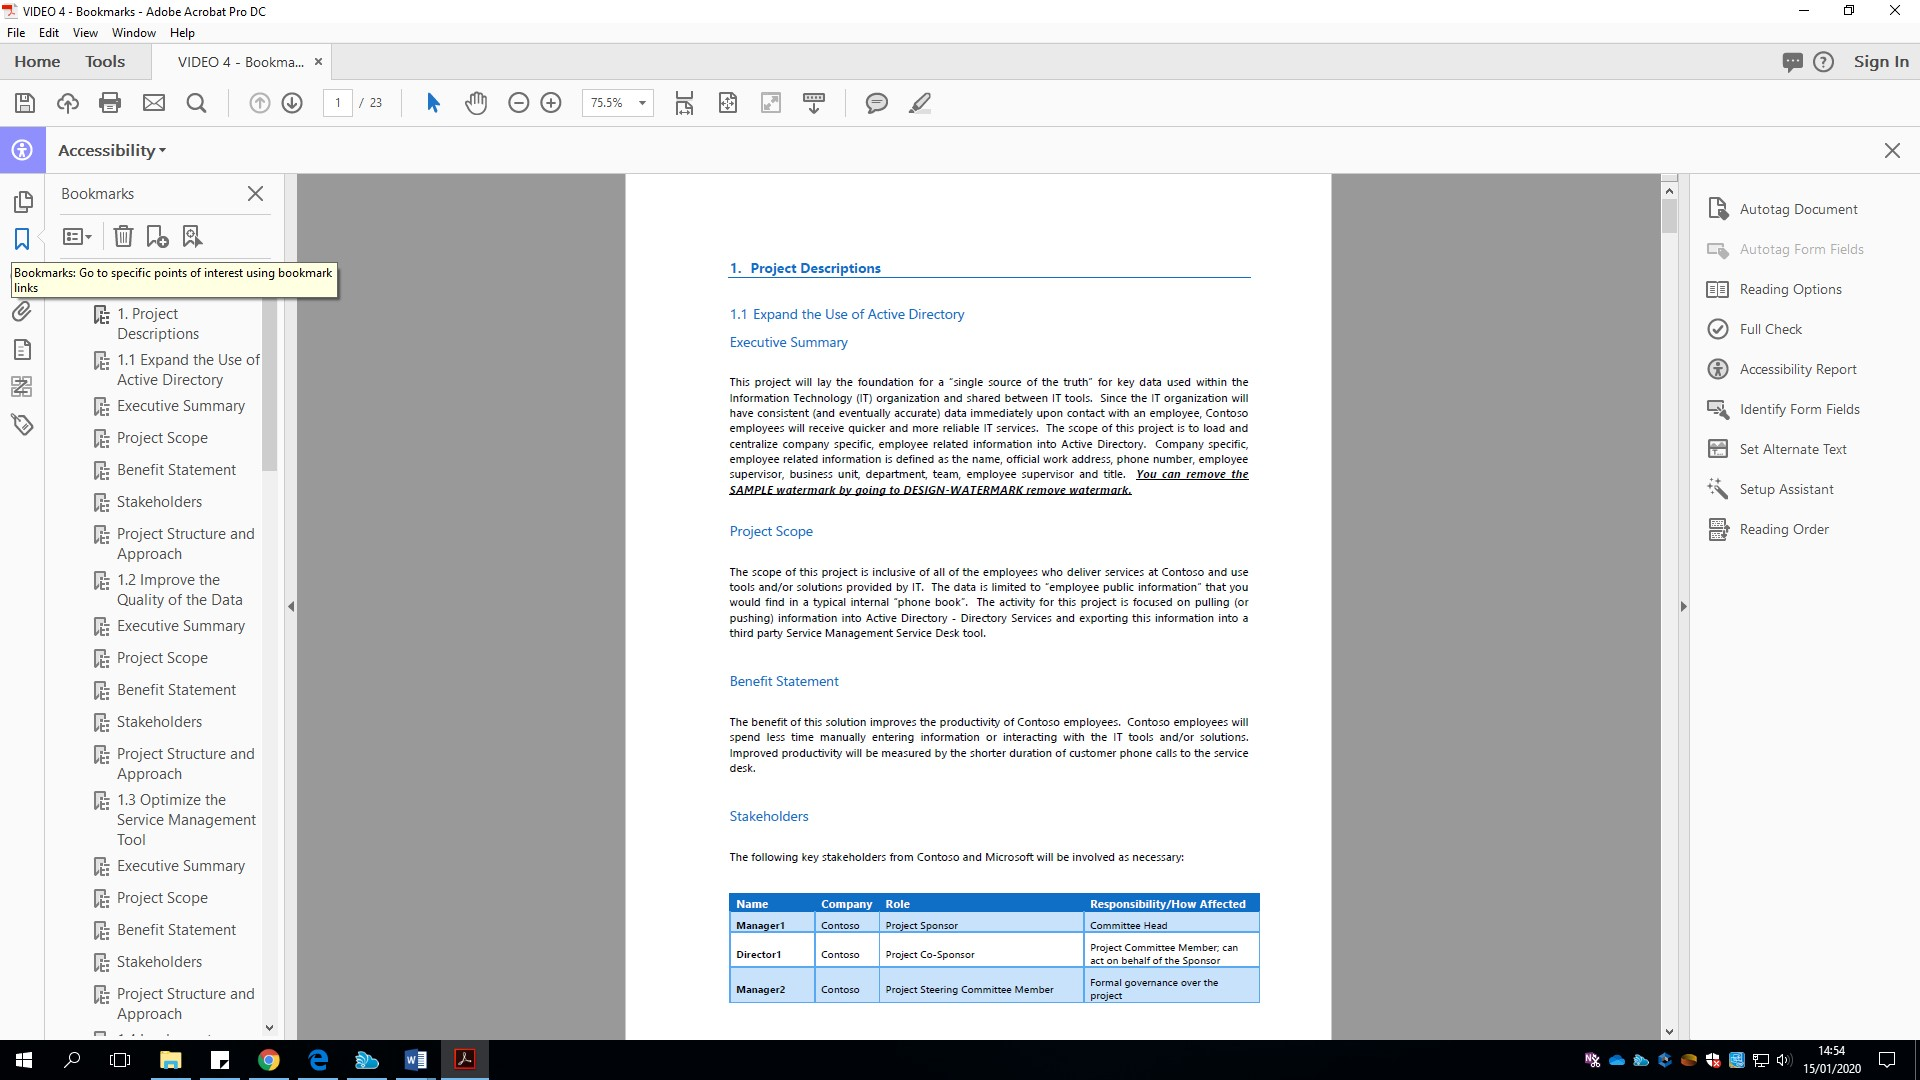 Screenshot displaying the bookmarks in a PDF document from the left hand accessibility pane.